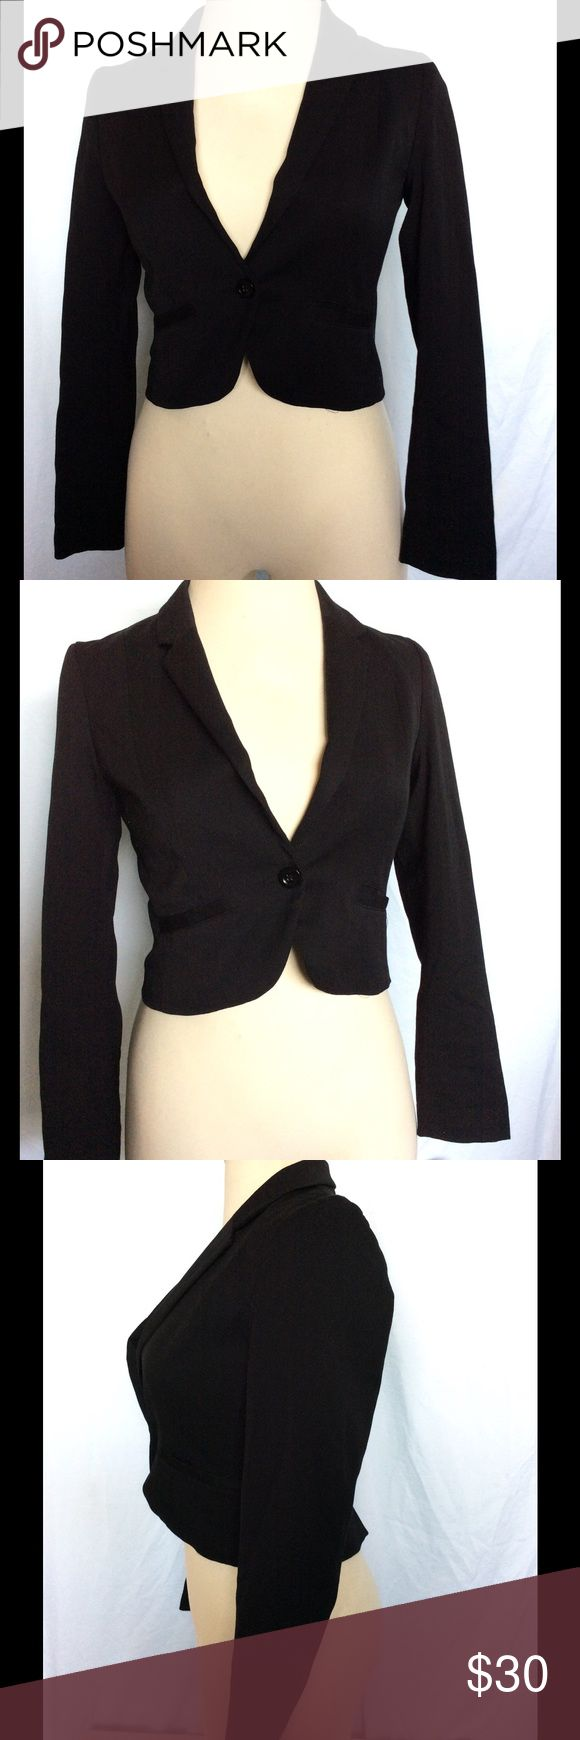 DIVIDED BY H&M Black Cropped Blazer Brand:  H&M  Type:  Blazer   Size:  10   Color:  Black  Measurements:  Arm 24 - Length 18 - Chest 17   Details:  cropped tuxedo style, one button closure   Condition:  Excellent.  No rips, stains or damages   Please ask any questions before buying.....Happy Shopping! Divided Jackets & Coats Blazers